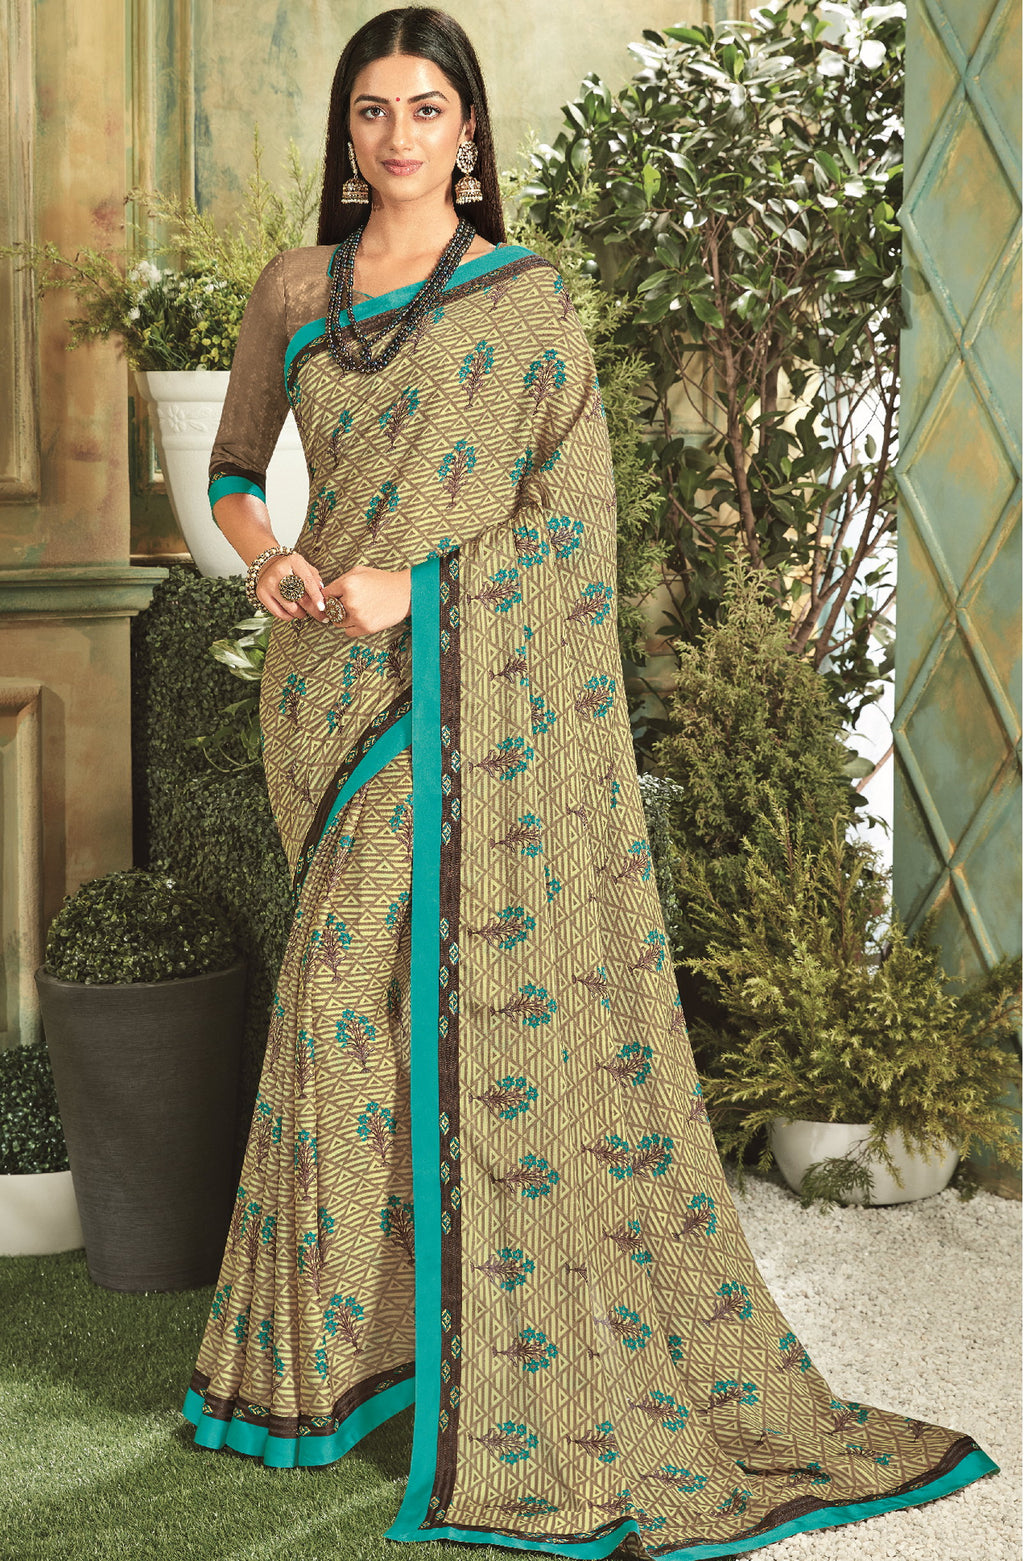 Beige Color Georgette Youthful Kitty Party Sarees NYF-5680